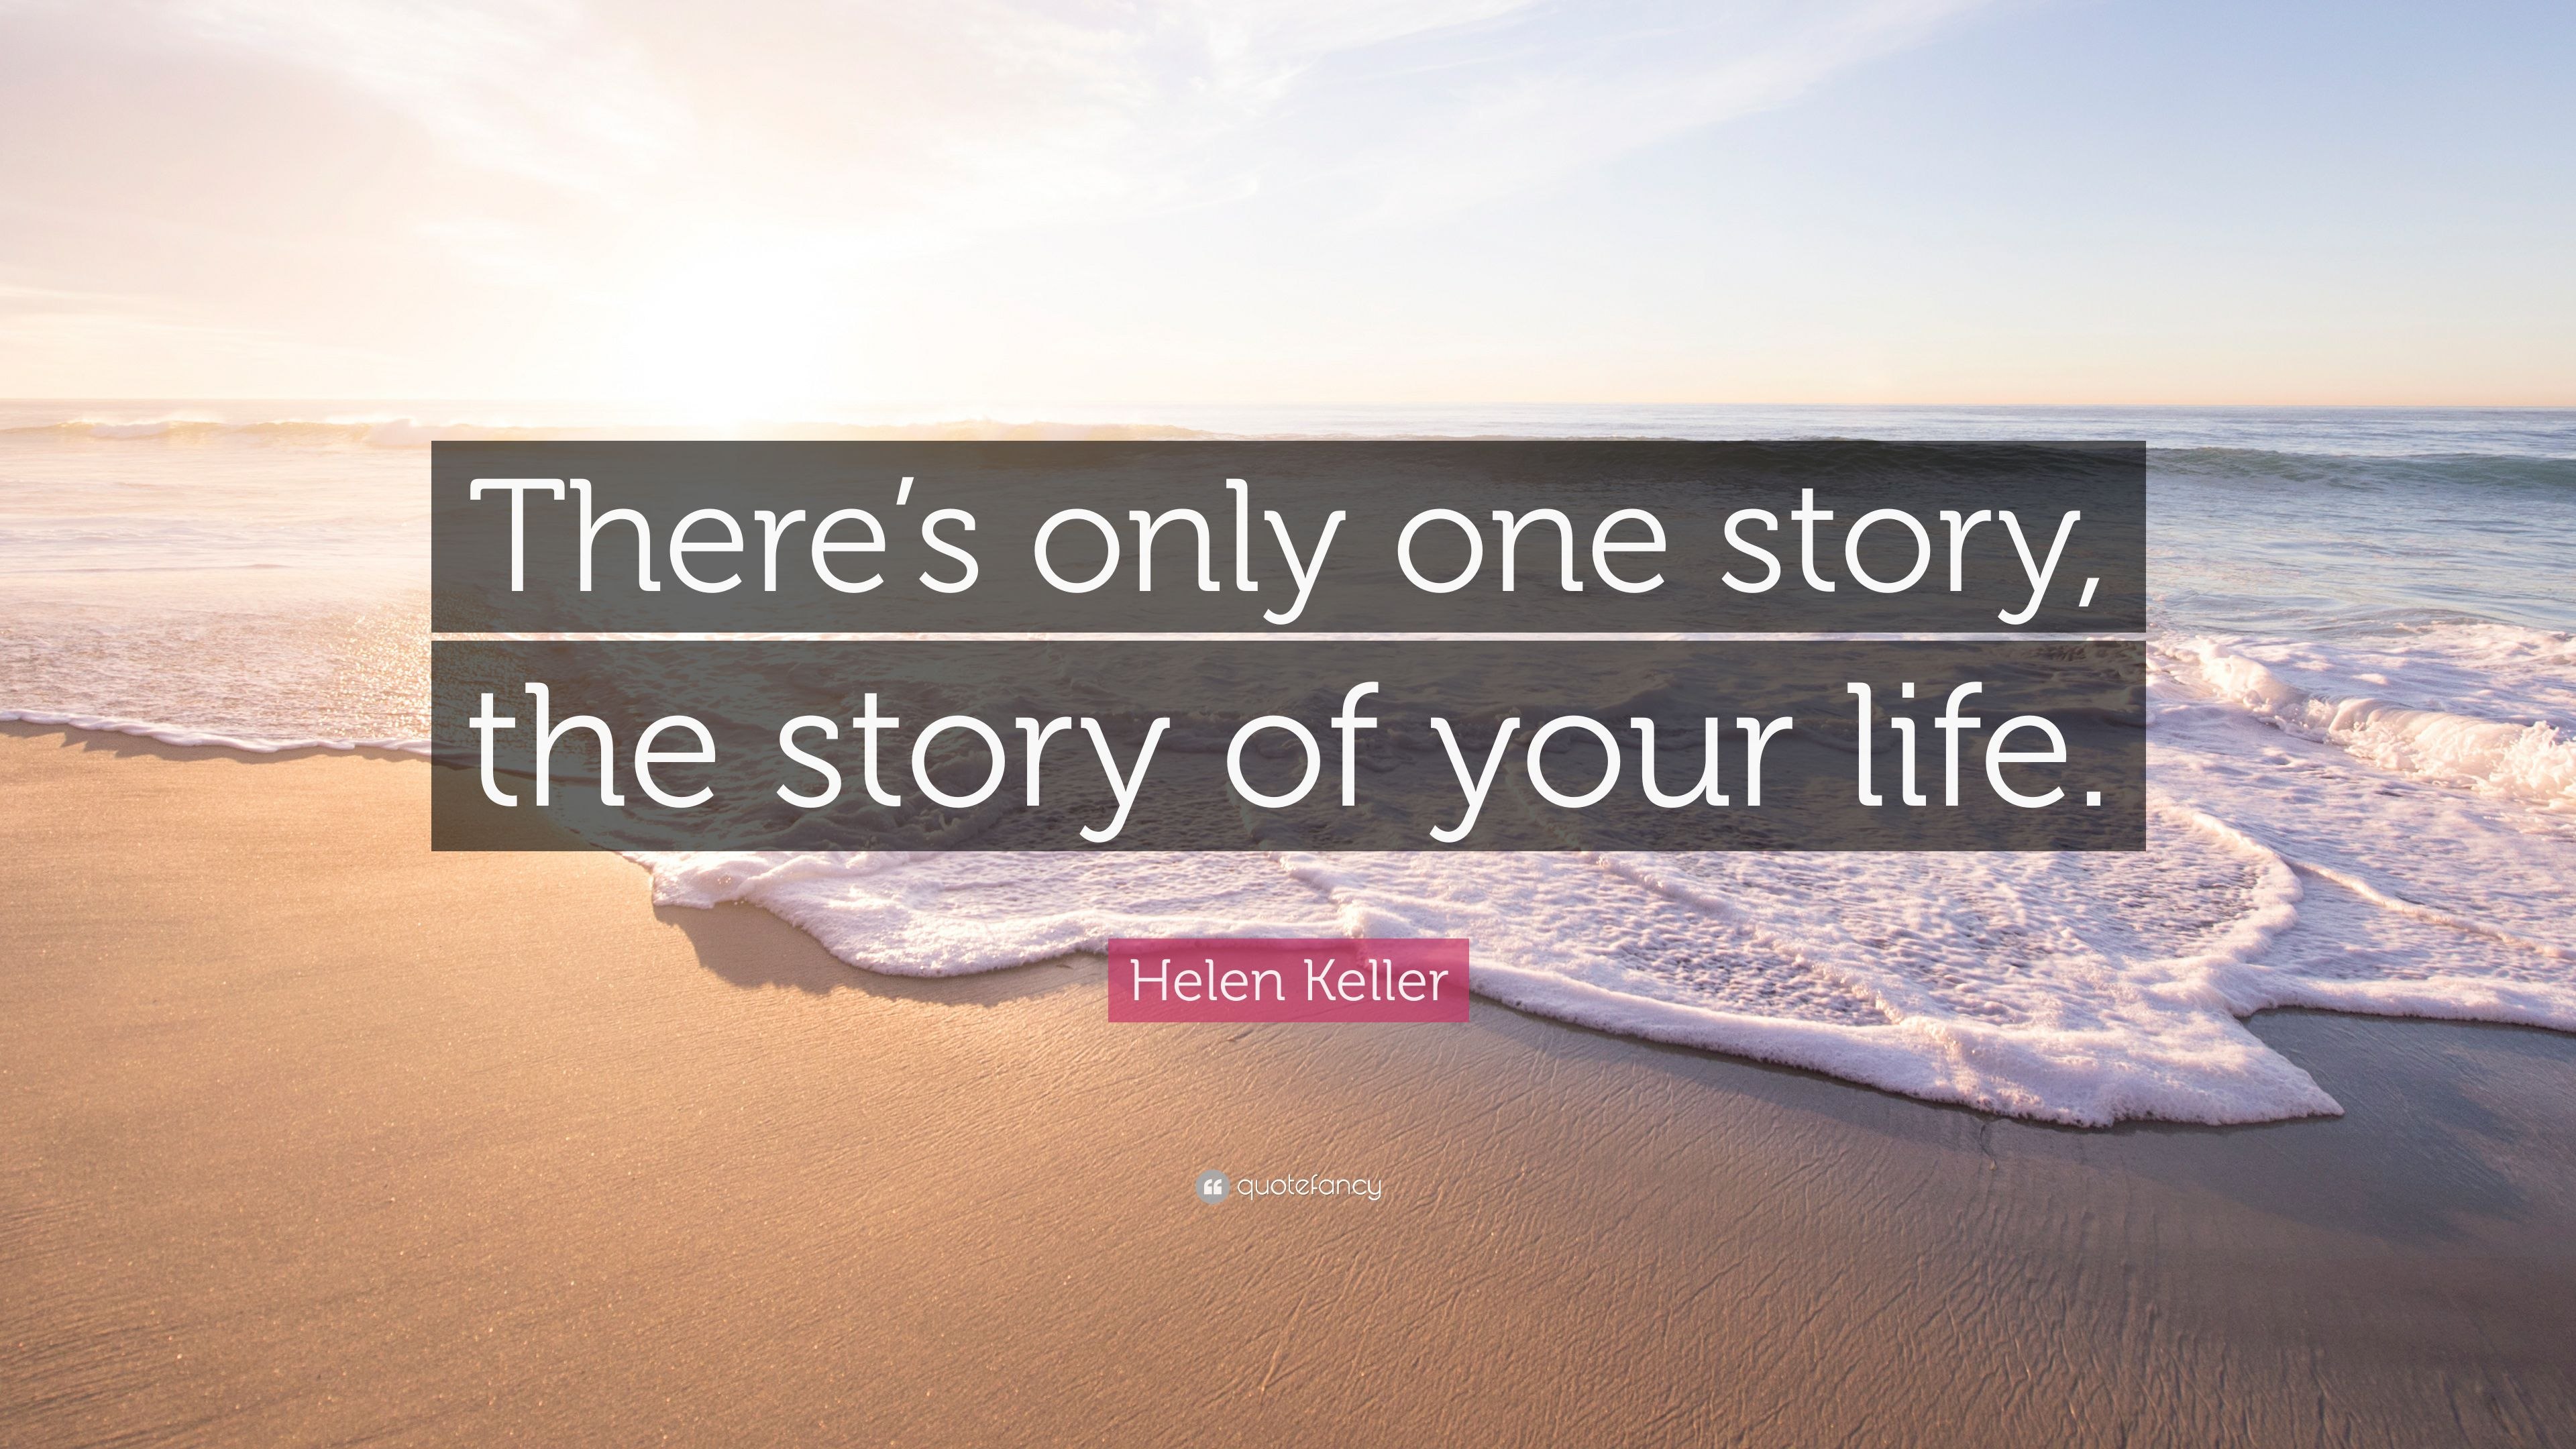 Helen Keller Quote: U201cThereu0027s Only One Story, The Story Of Your Life.